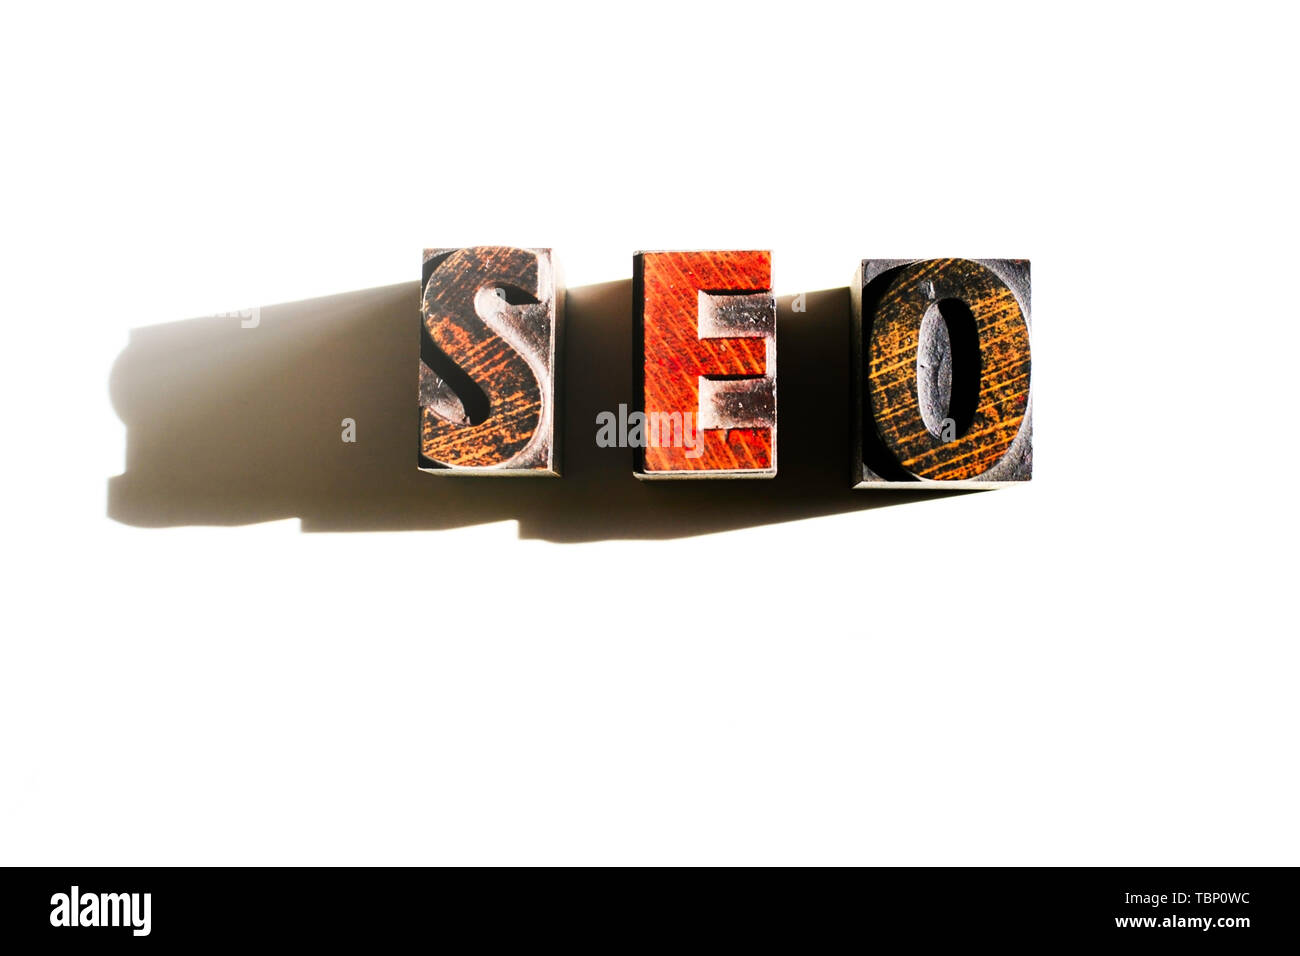 SEO text showing the importance of Search Engine Optimisation for better search results and increase traffic for online business - Stock Image